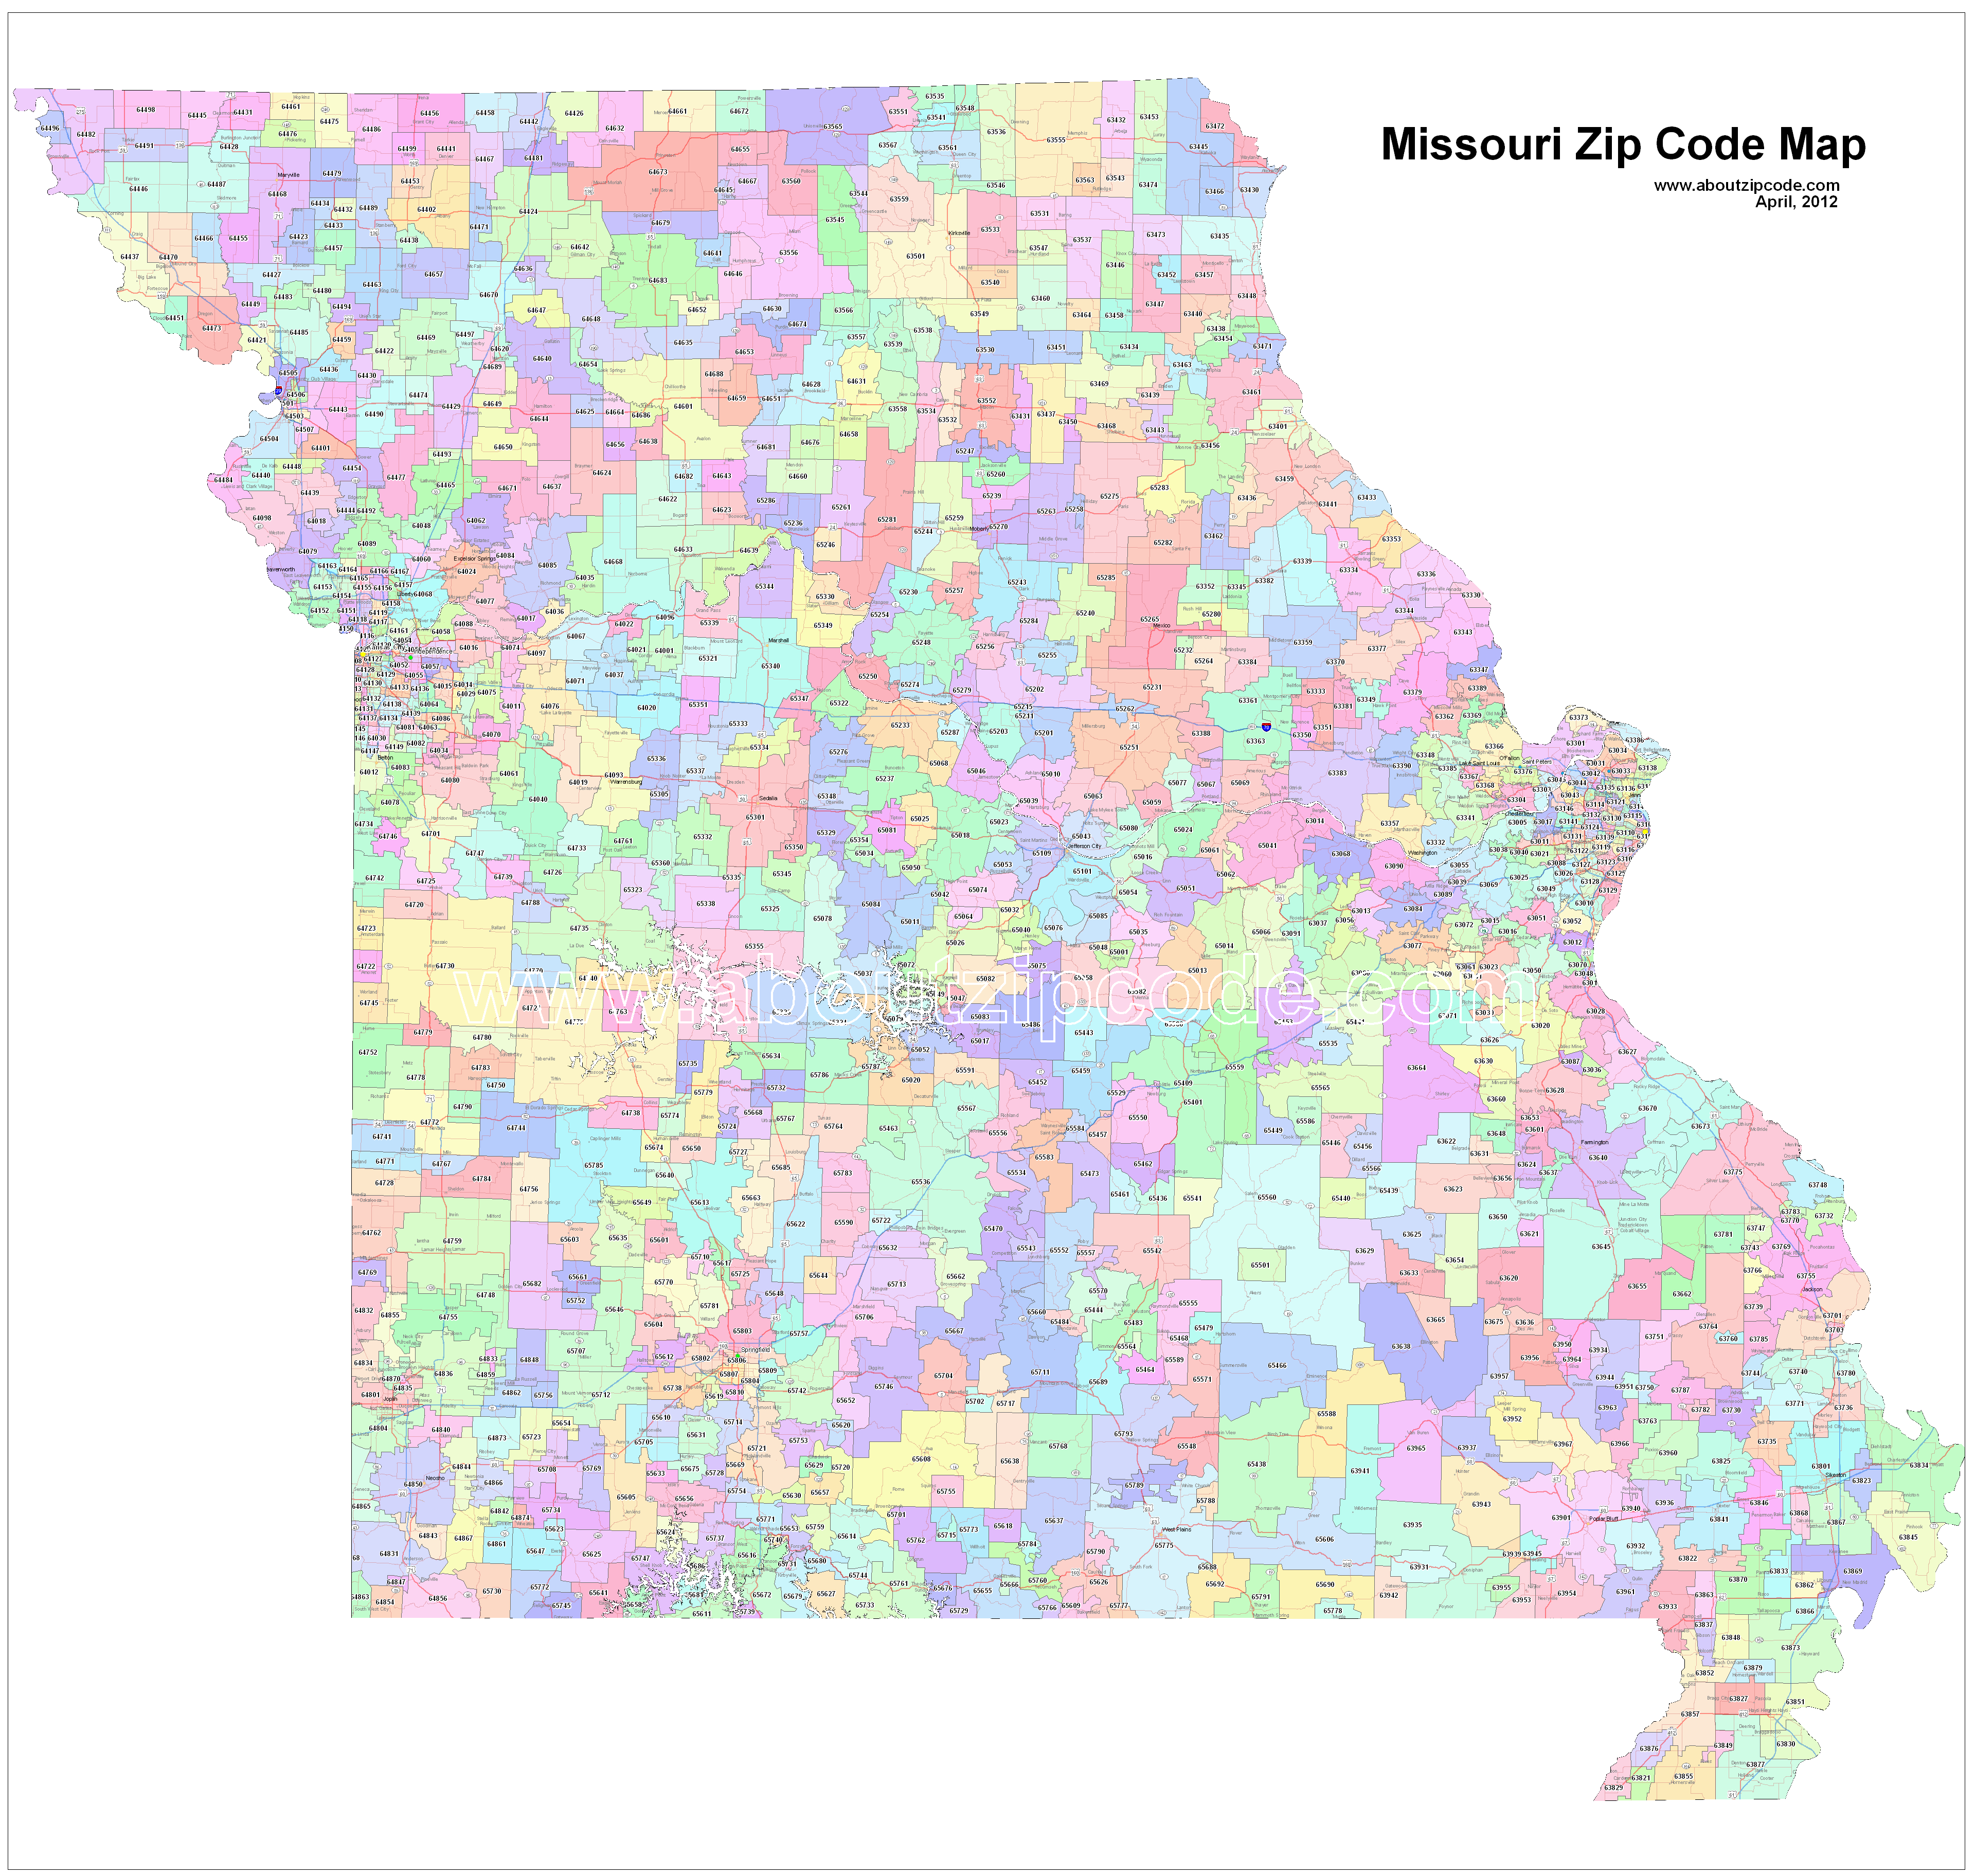 Blue Springs Mo Zip Code Map.Missouri Zip Code Maps Free Missouri Zip Code Maps